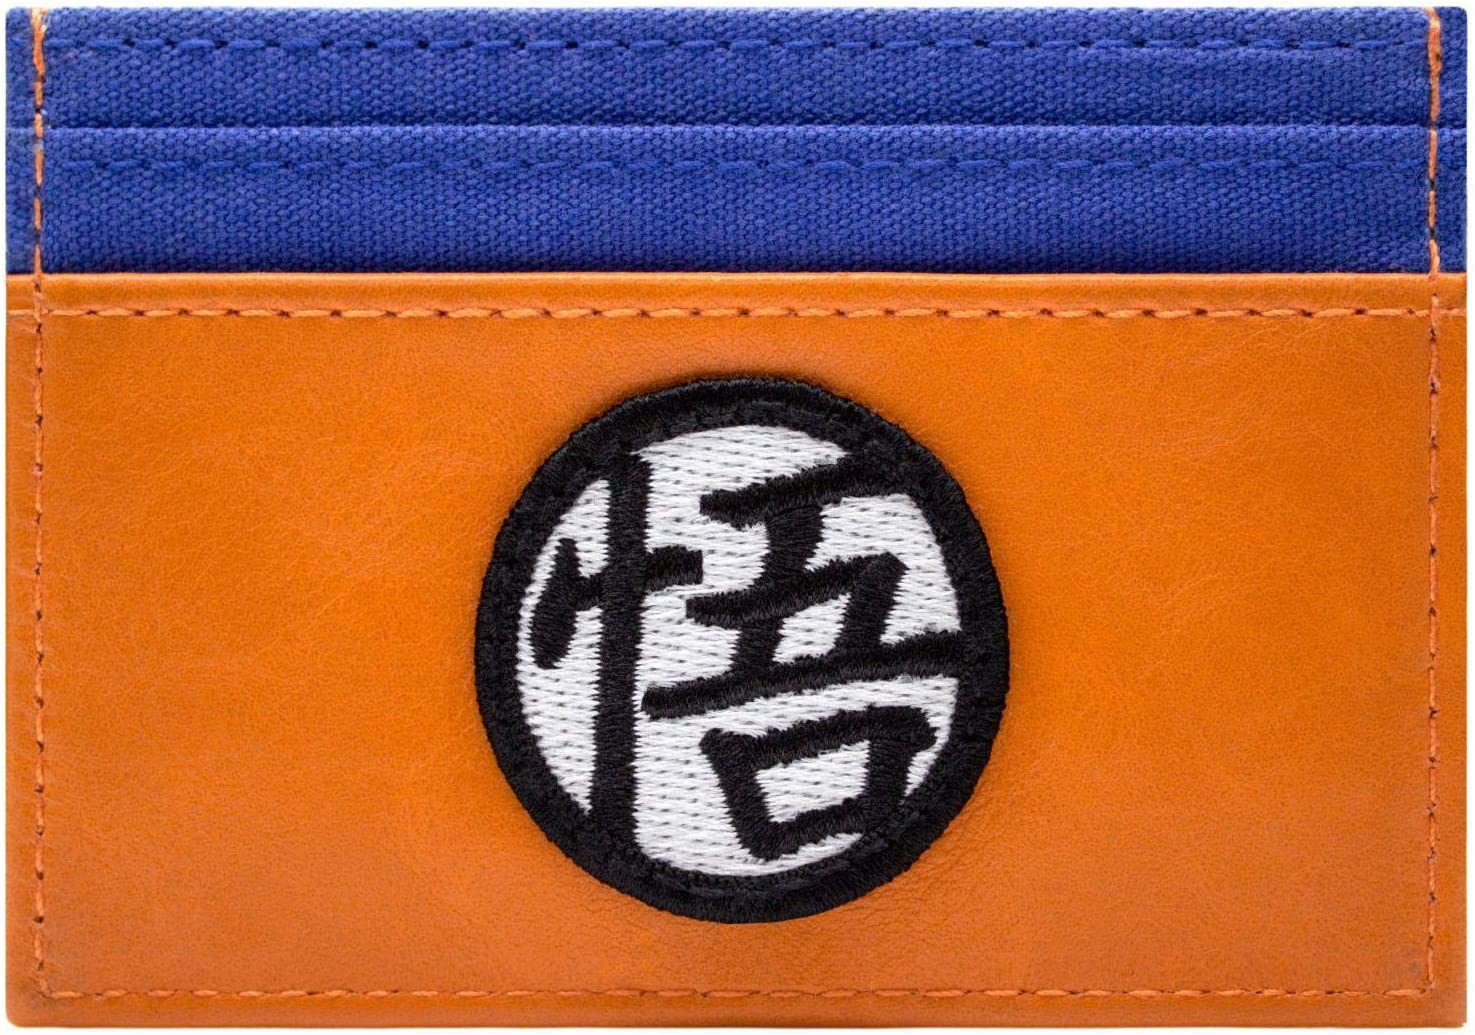 Dragon Ball Z Gokus Sagesse Kanji Portefeuille Orange